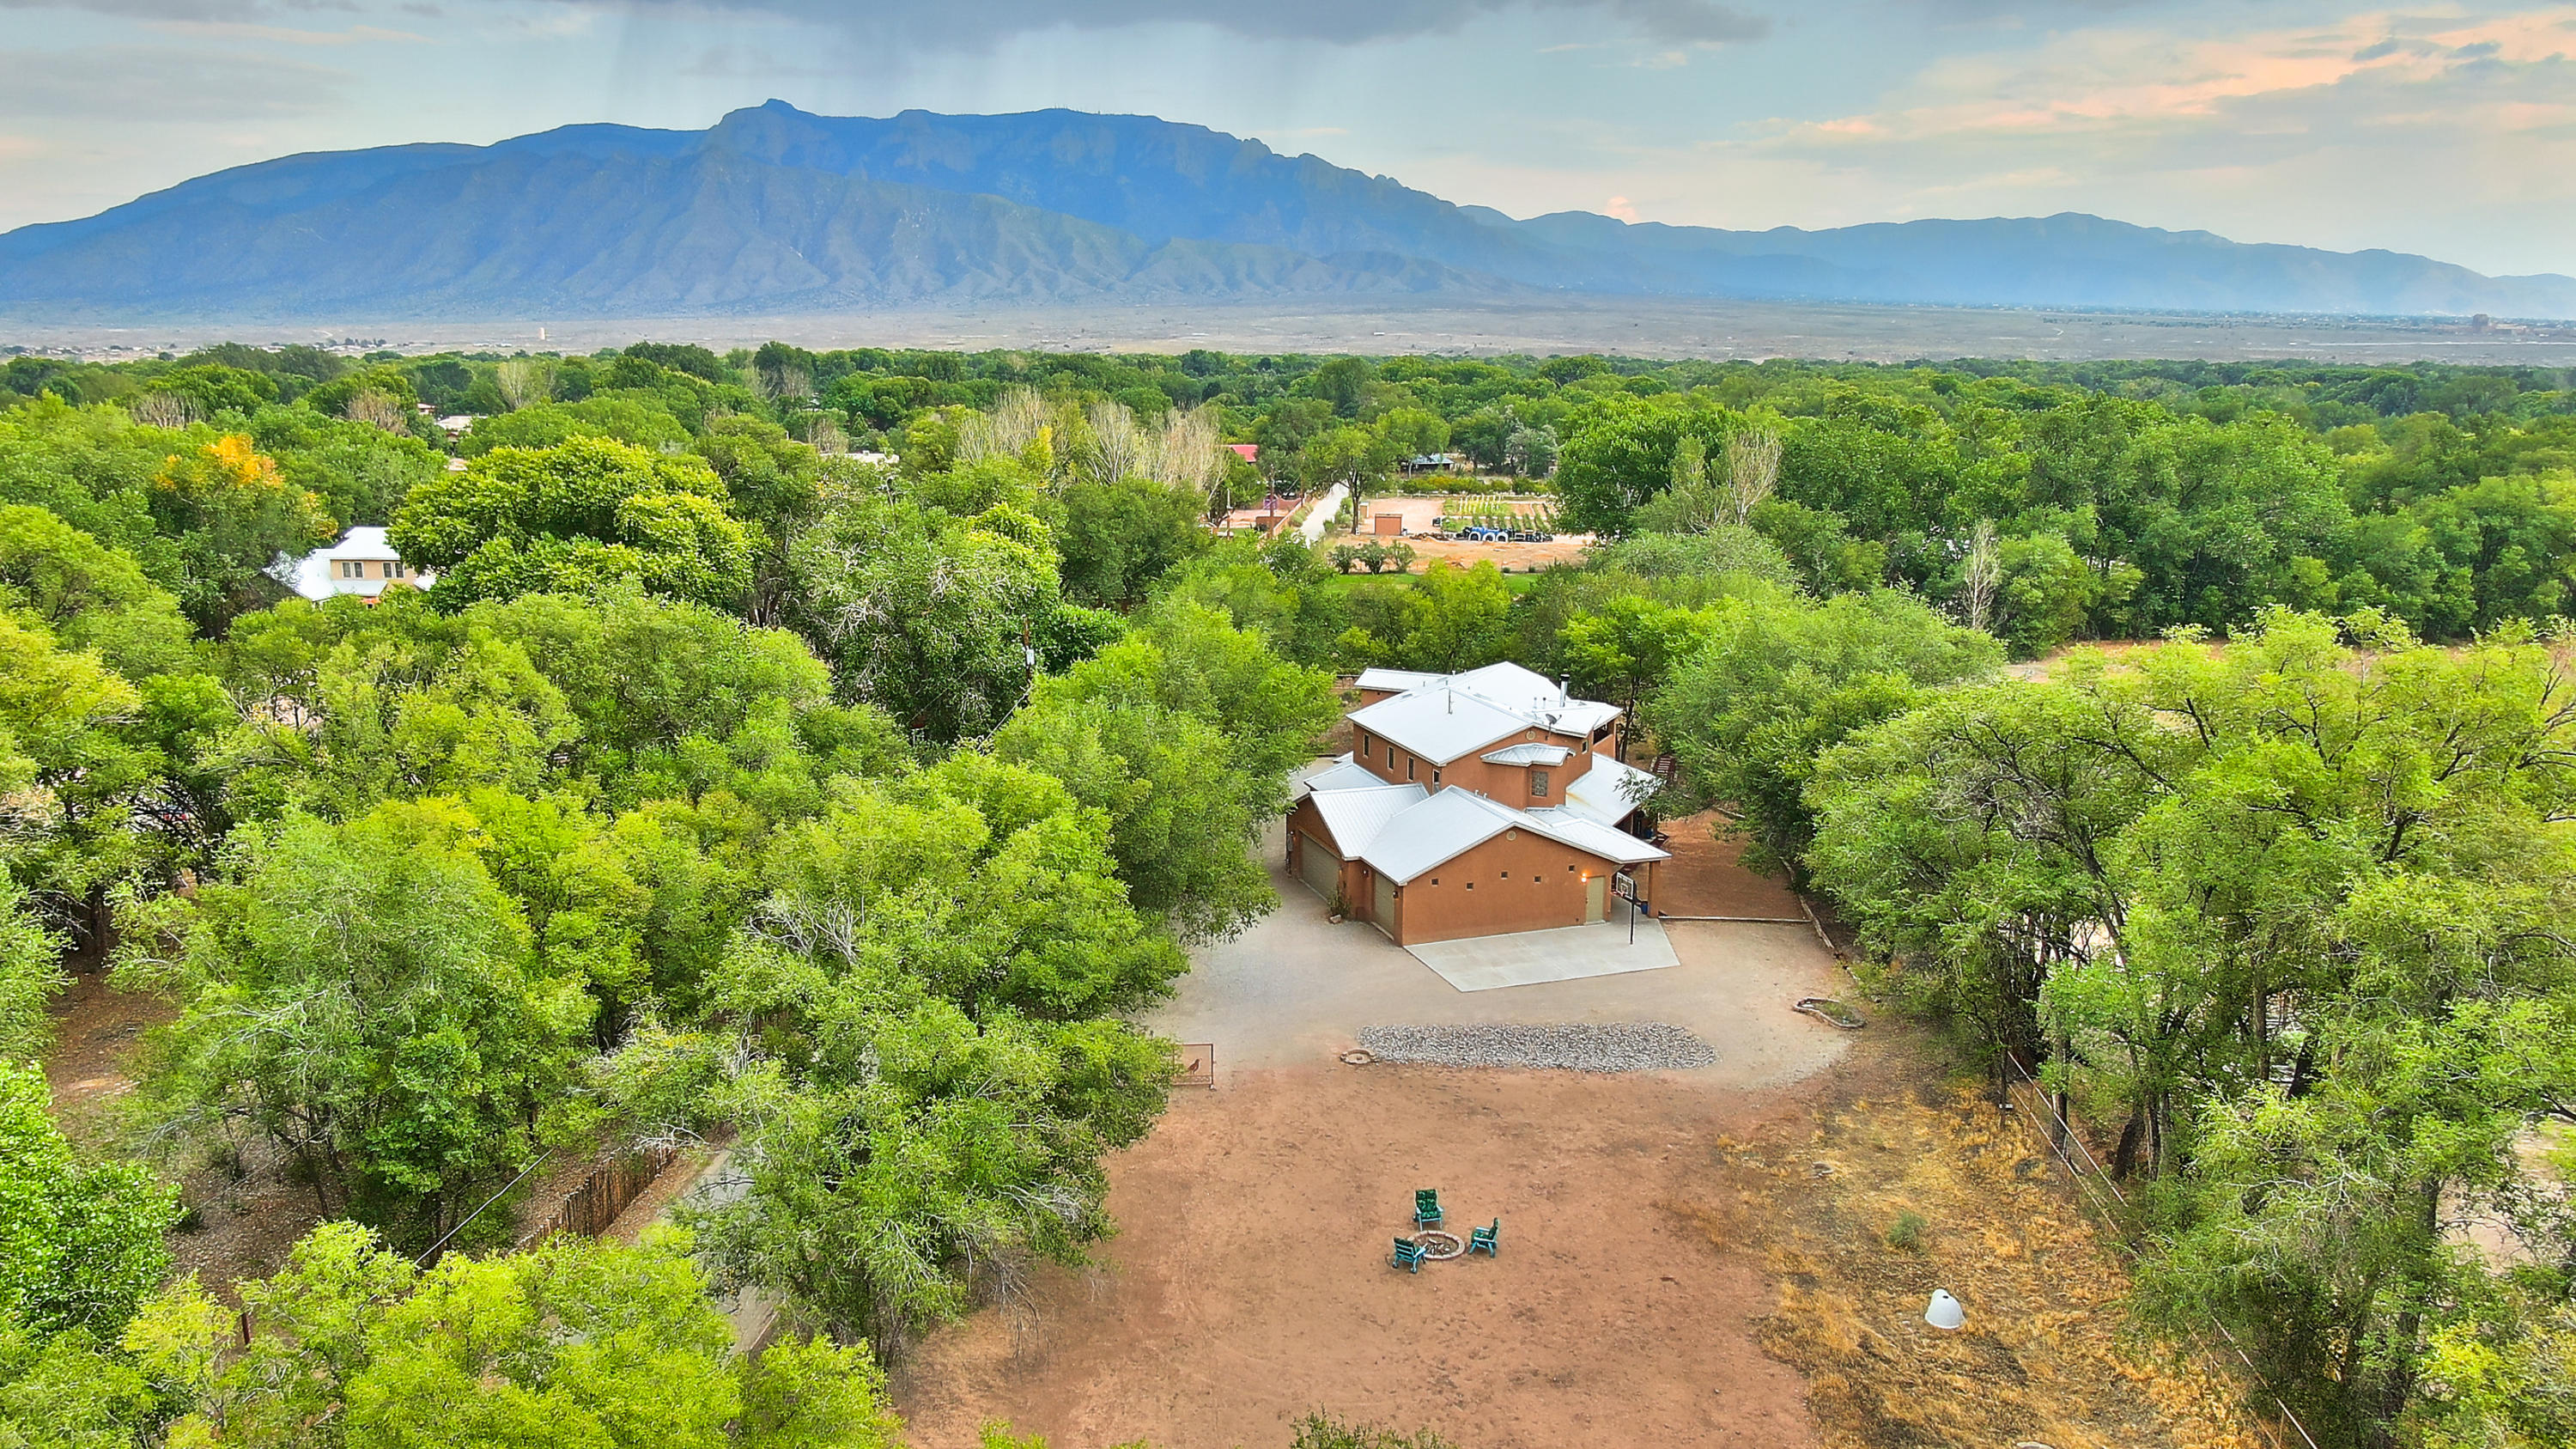 Fabulous custom home in desirable eastside, greenbelt location.  Northern NM in style,  this 2 story home sits on one piped, full acre.  Open, defined & light.  Wood floors, radiant floor & BB heat,  Refrigerated air. Great room w/high ceilings, vigas w/ T & G,fireplace/ pellet stove insert, & bancos.  Den w/wet bar,separate entry, BR & Bath.  Well designed kitchen.  island, gas cook top, downdraft, double oven, micro, & large pantry.  Access to outdoor kitchen w/wood burning fireplace.  Upstairs, MBR w/sitting area, balcony, garden bath, walk in closet.Three other generous size BR's, one with full bath, other two BR's share Jack & Jill bath.Service room is spacious,  three car gar.,set up well for a workshop.  Room for horse or vineyard to the west!  Lots of value,  a must to see!